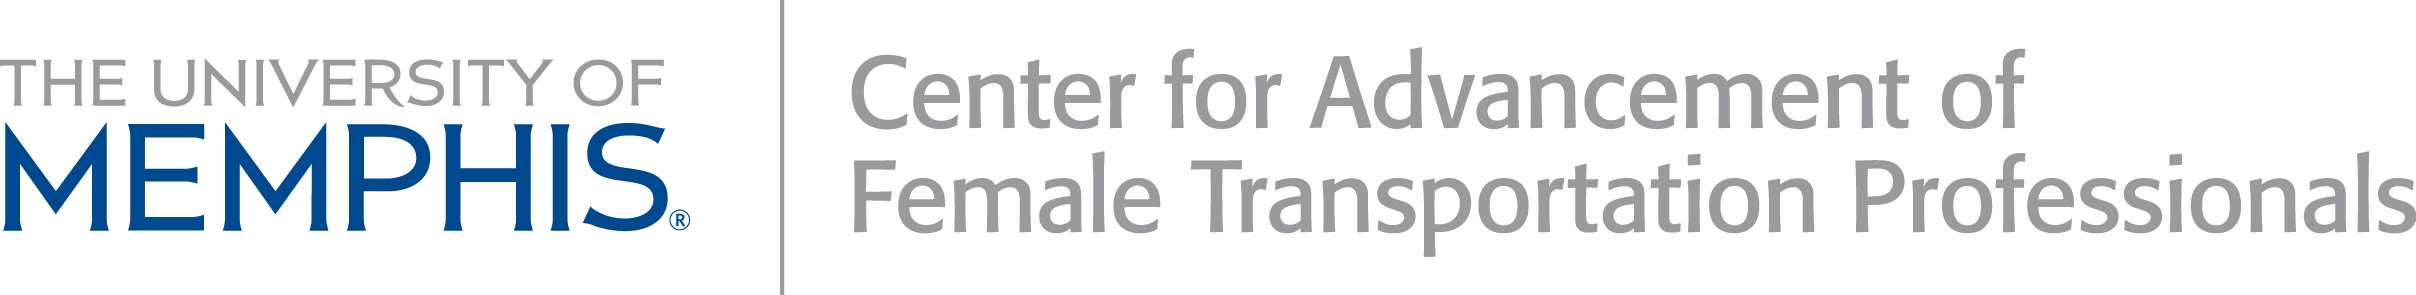 center for advancement of female transportation professionals